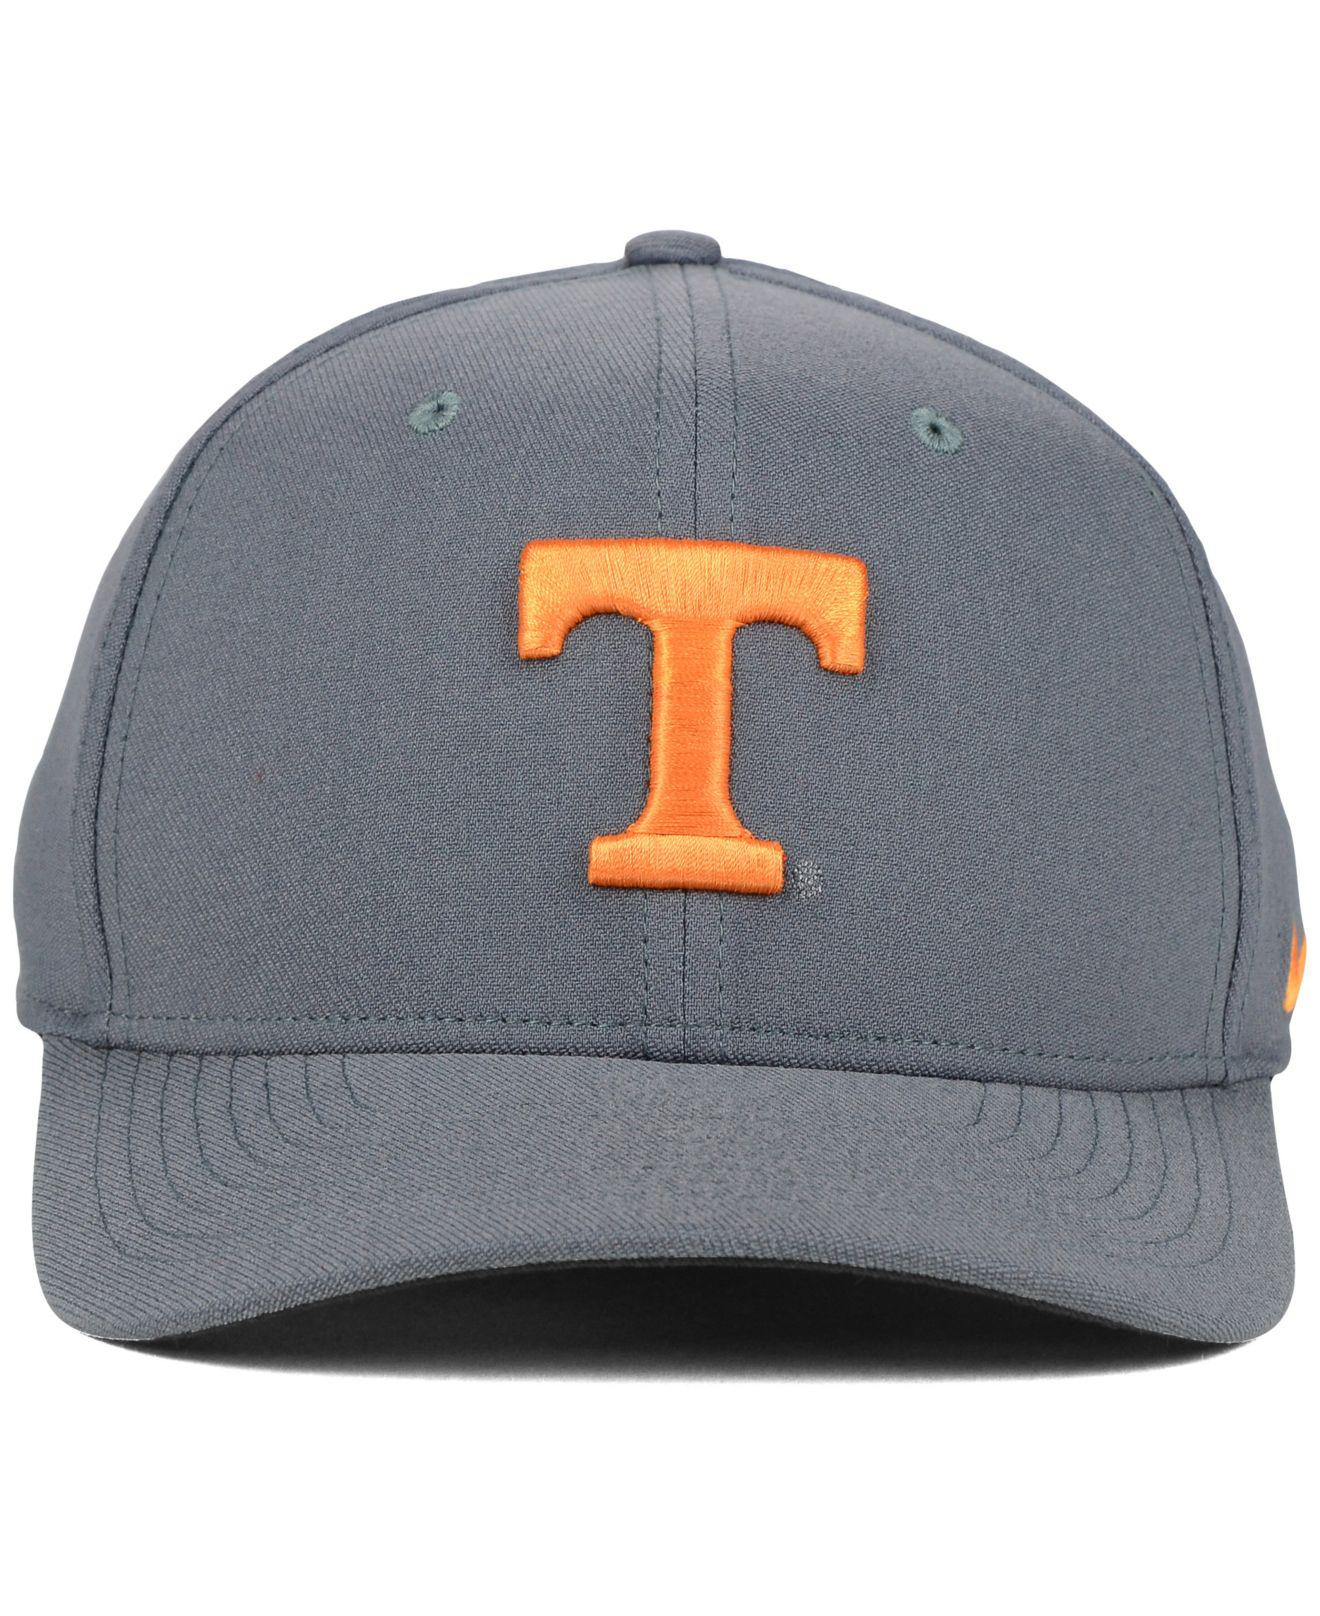 buy online c7d69 2a7ab closeout gray tennessee vols hat 19b14 c11d0